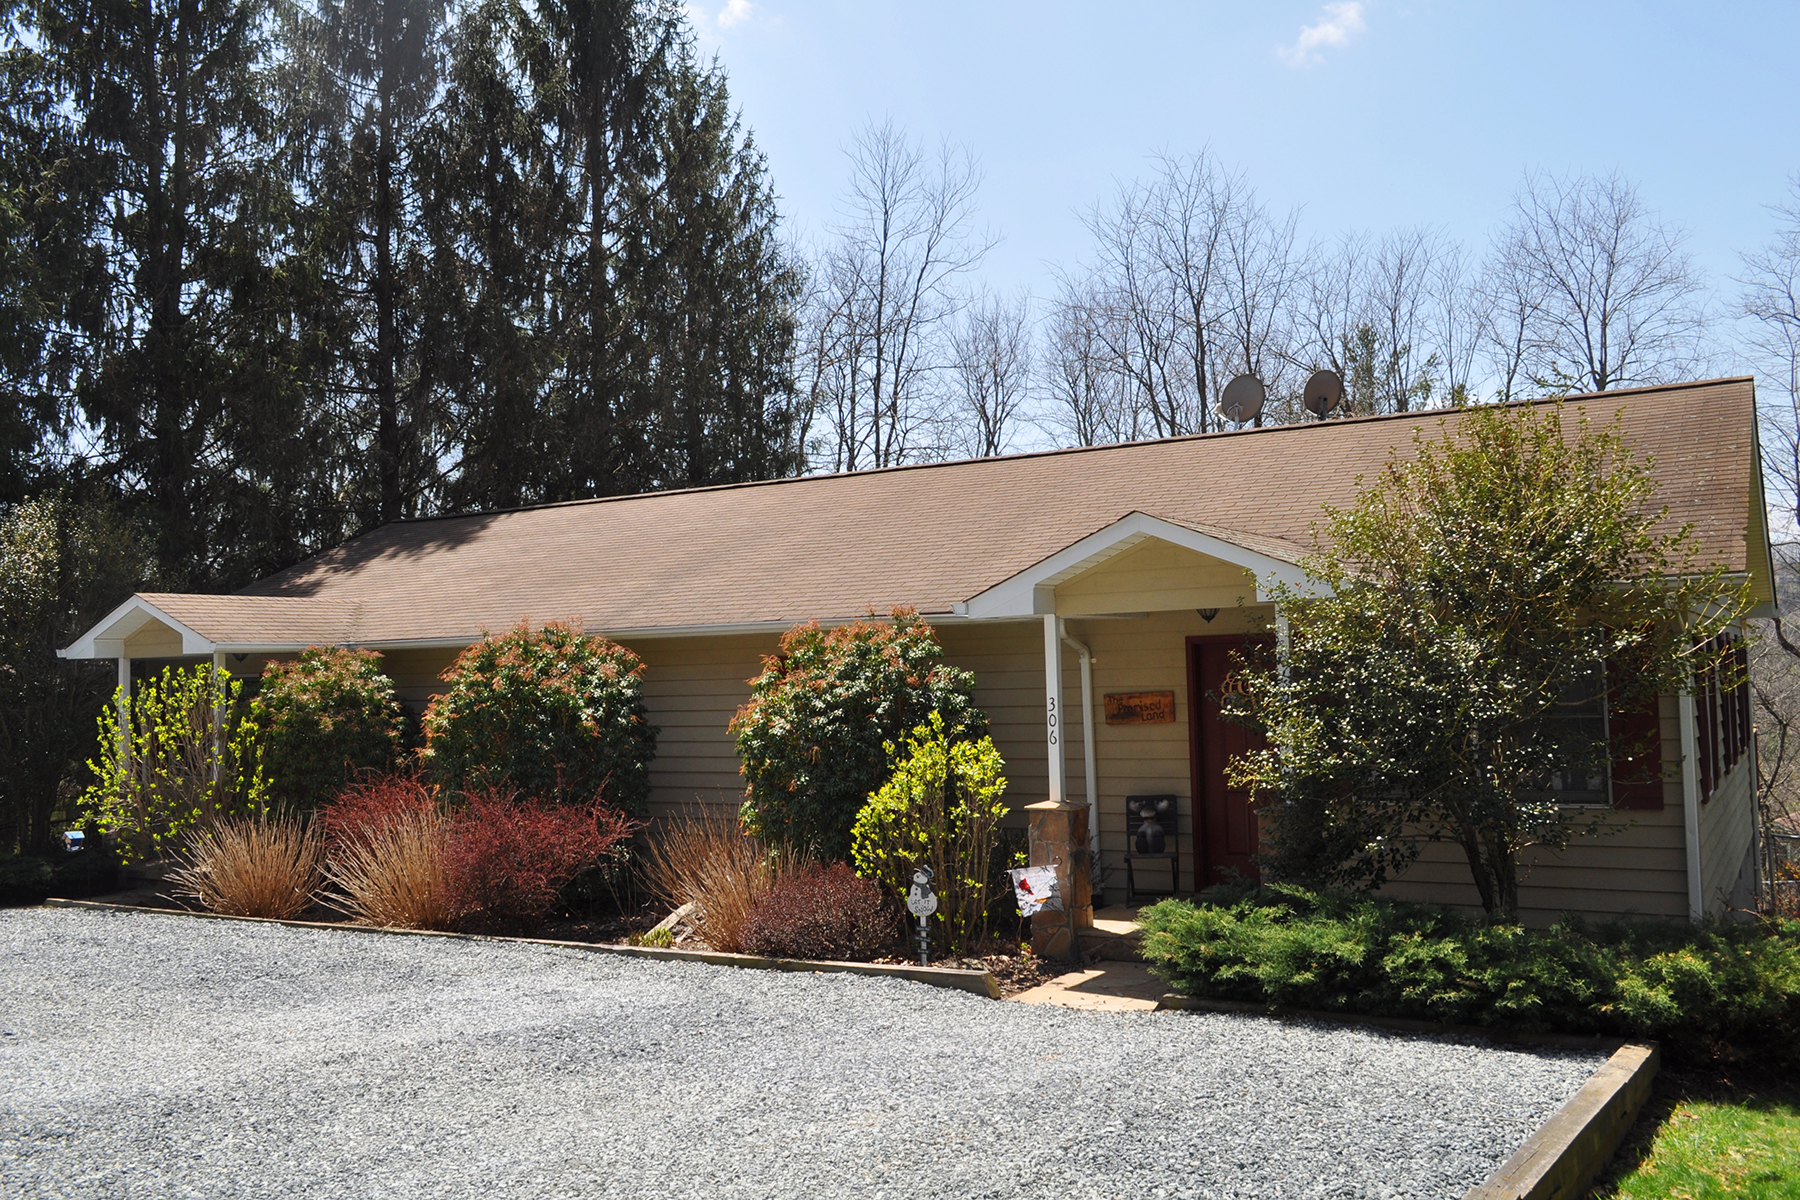 Multi-Family Home for Sale at BOONE 306 Margot Rd 1 and 2, Boone, North Carolina 28607 United States